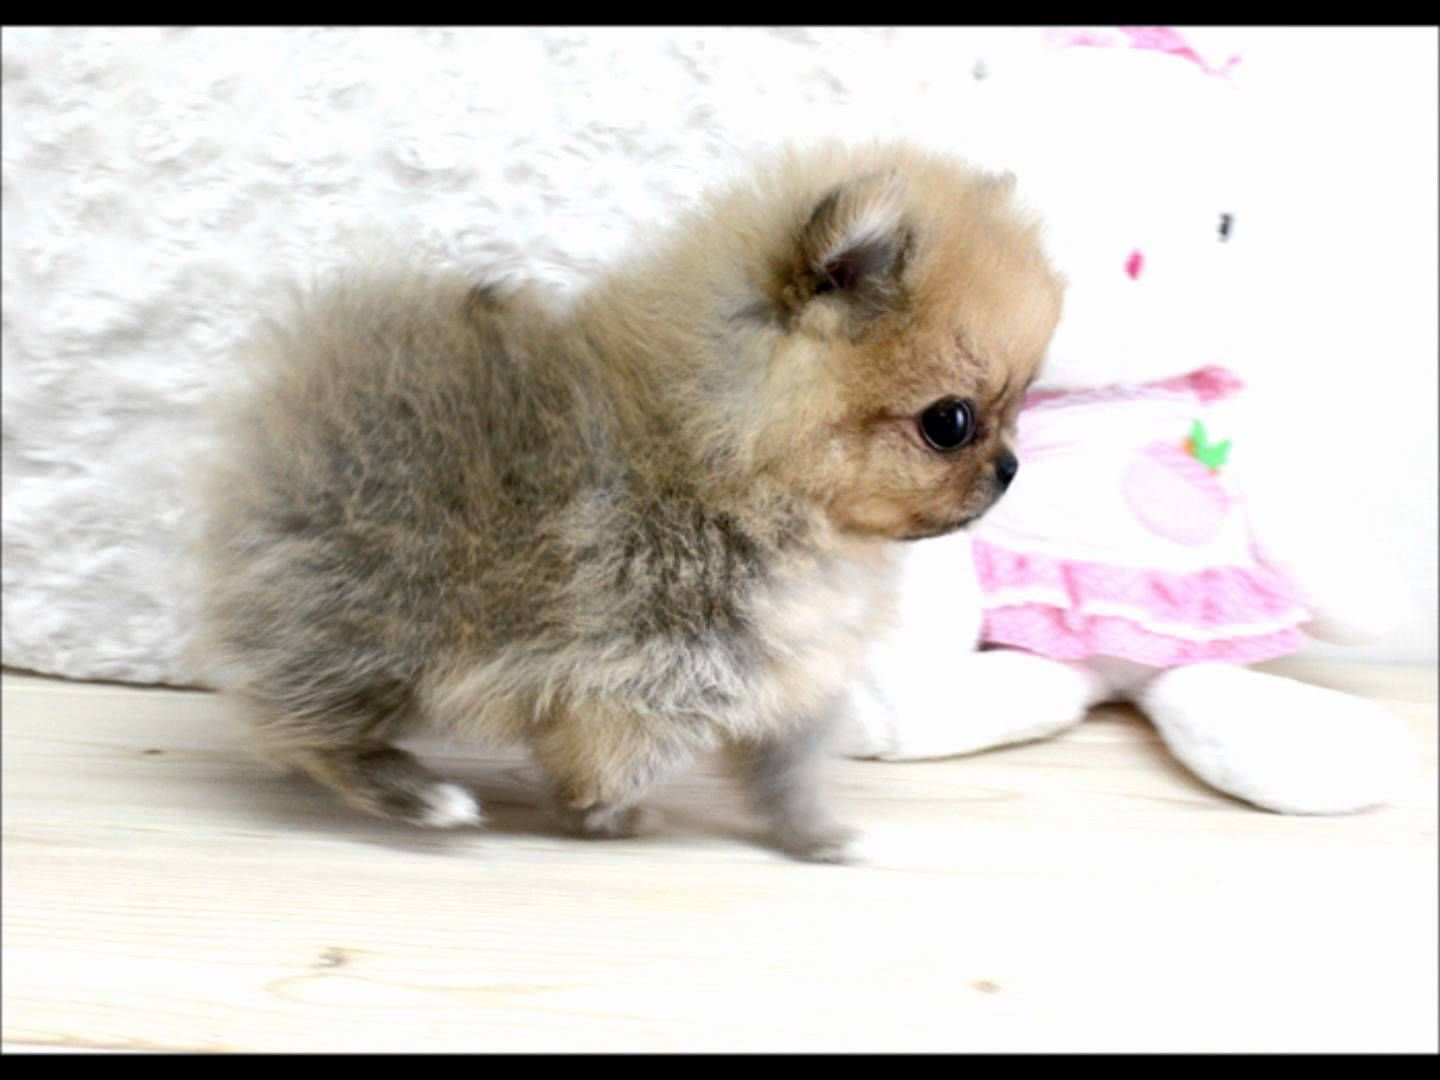 Boutique Teacup Puppies Micro Teacup Pomeranians Tiniest Pom Puppies Teacup Puppies Puppies Pomeranian Puppy Teacup